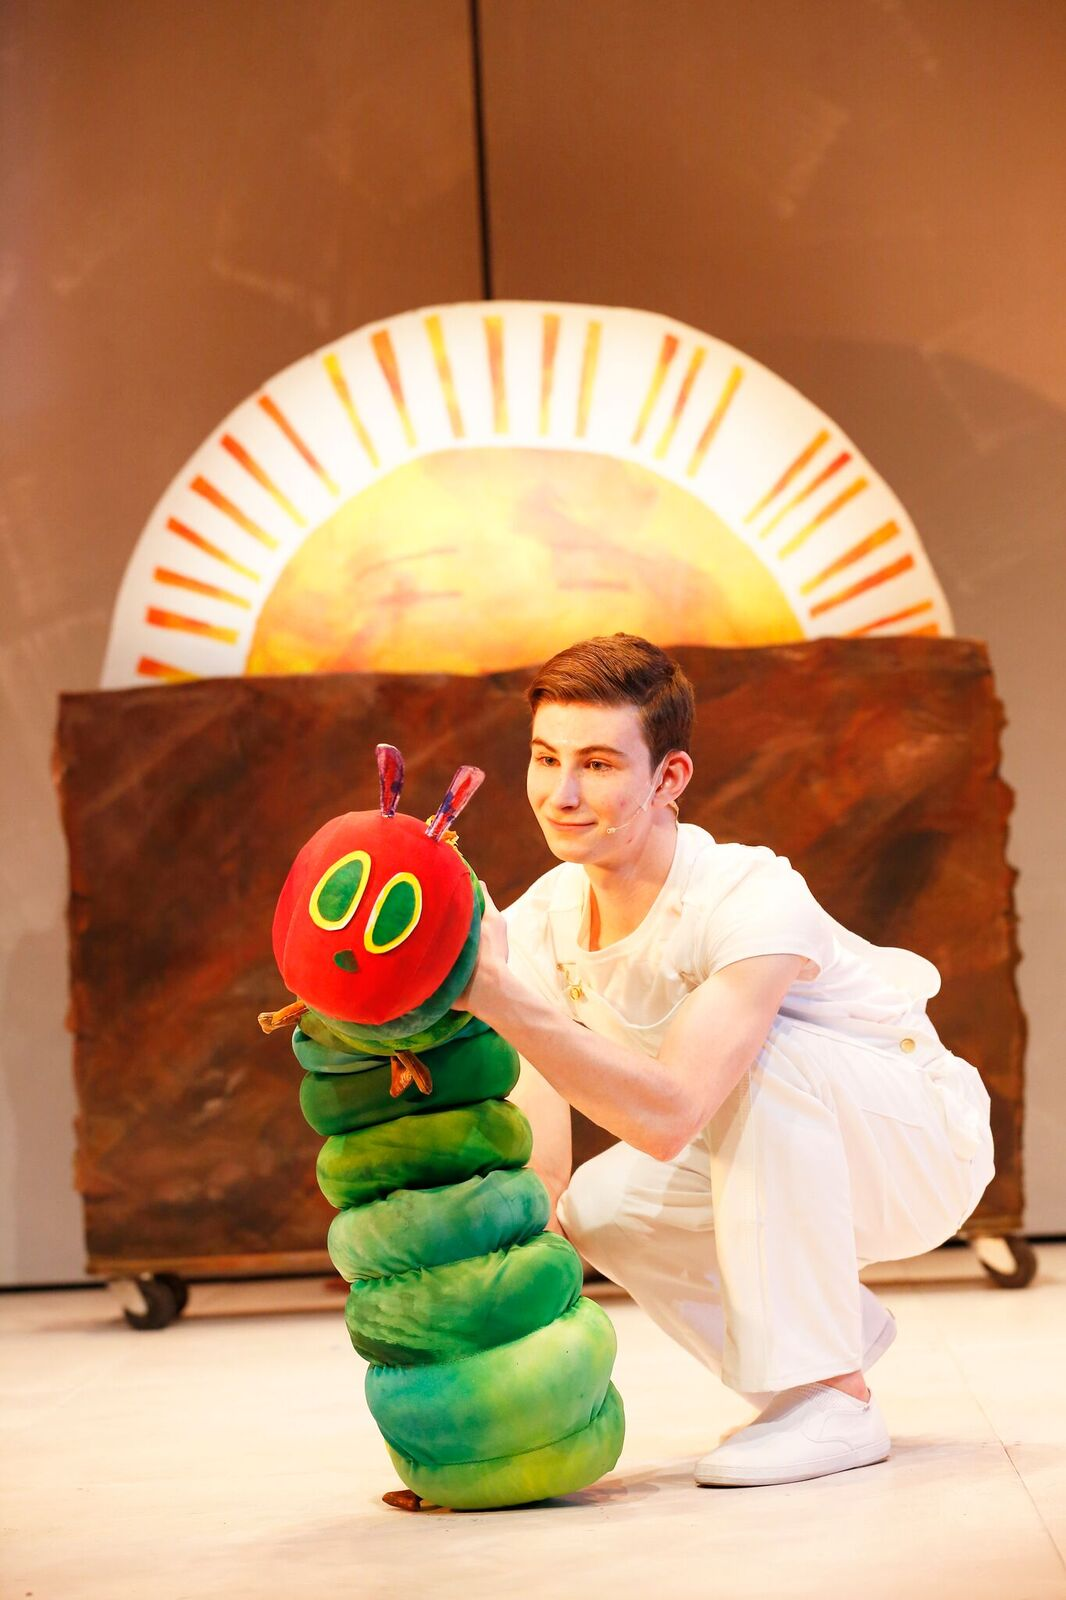 The Very Hungry Caterpillar Show is Back nyc